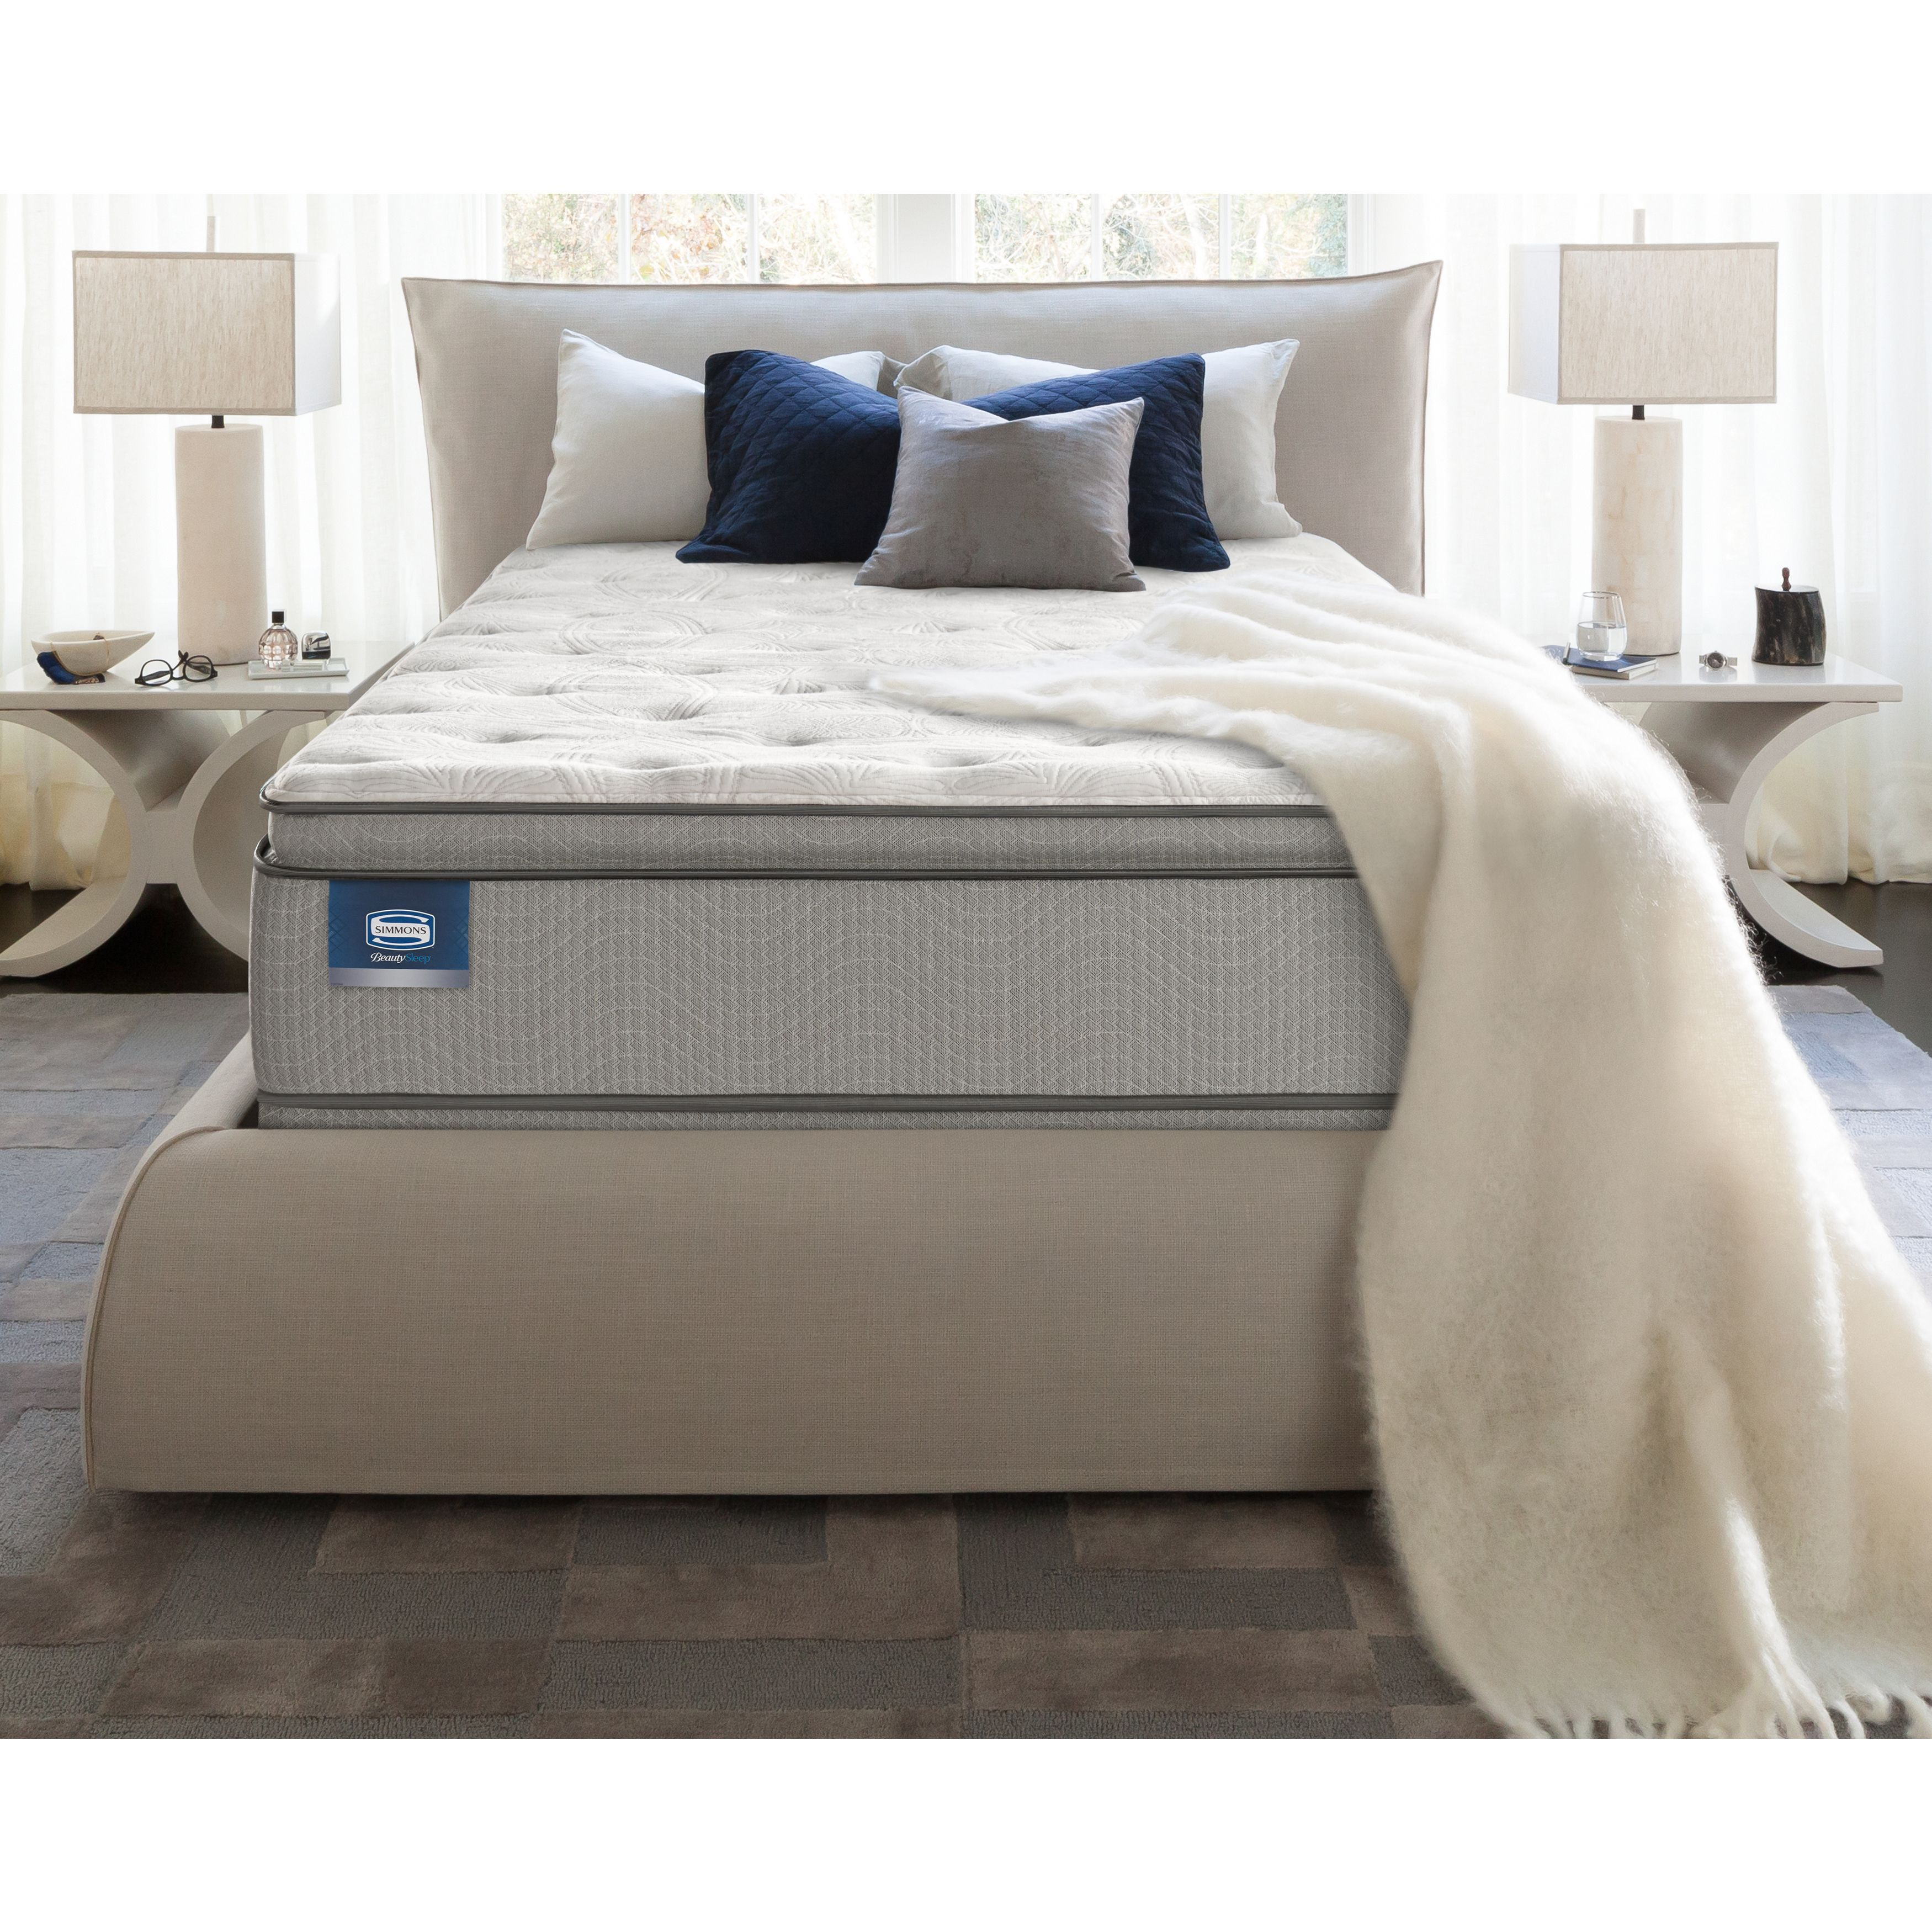 king dk by california duvet storage products with bed under cover furniture sleigh drawers